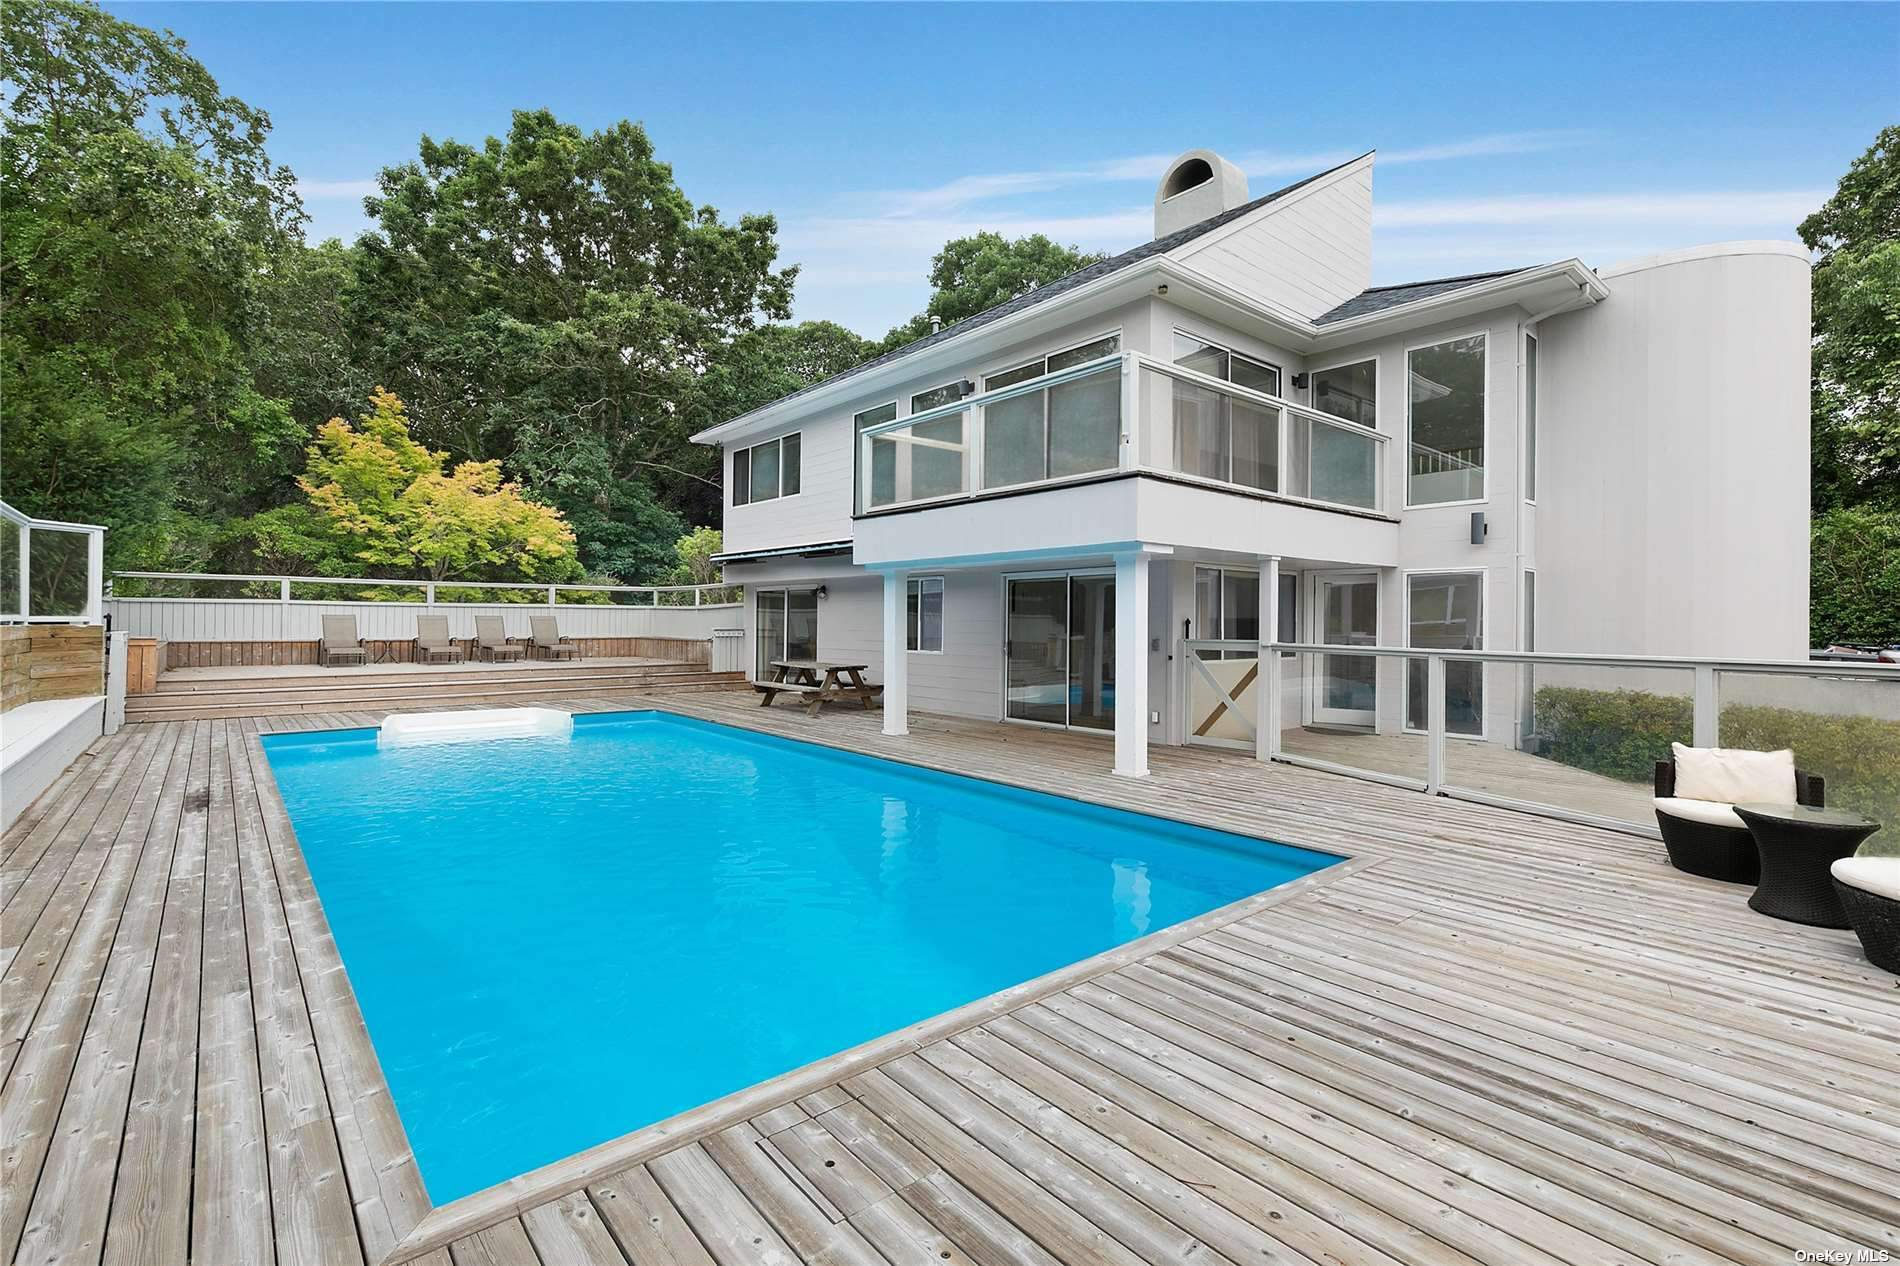 Directly across from Cold Spring Pond sits a 3 bed 3 bath contemporary on 1+ acre. Stunning views of from Kitchen, dining and living room. Spacious and open inside. Outside, an IG pool, outdoor fire place and private beach. Grab your paddle boards and head to this fabulous Southampton hideaway!